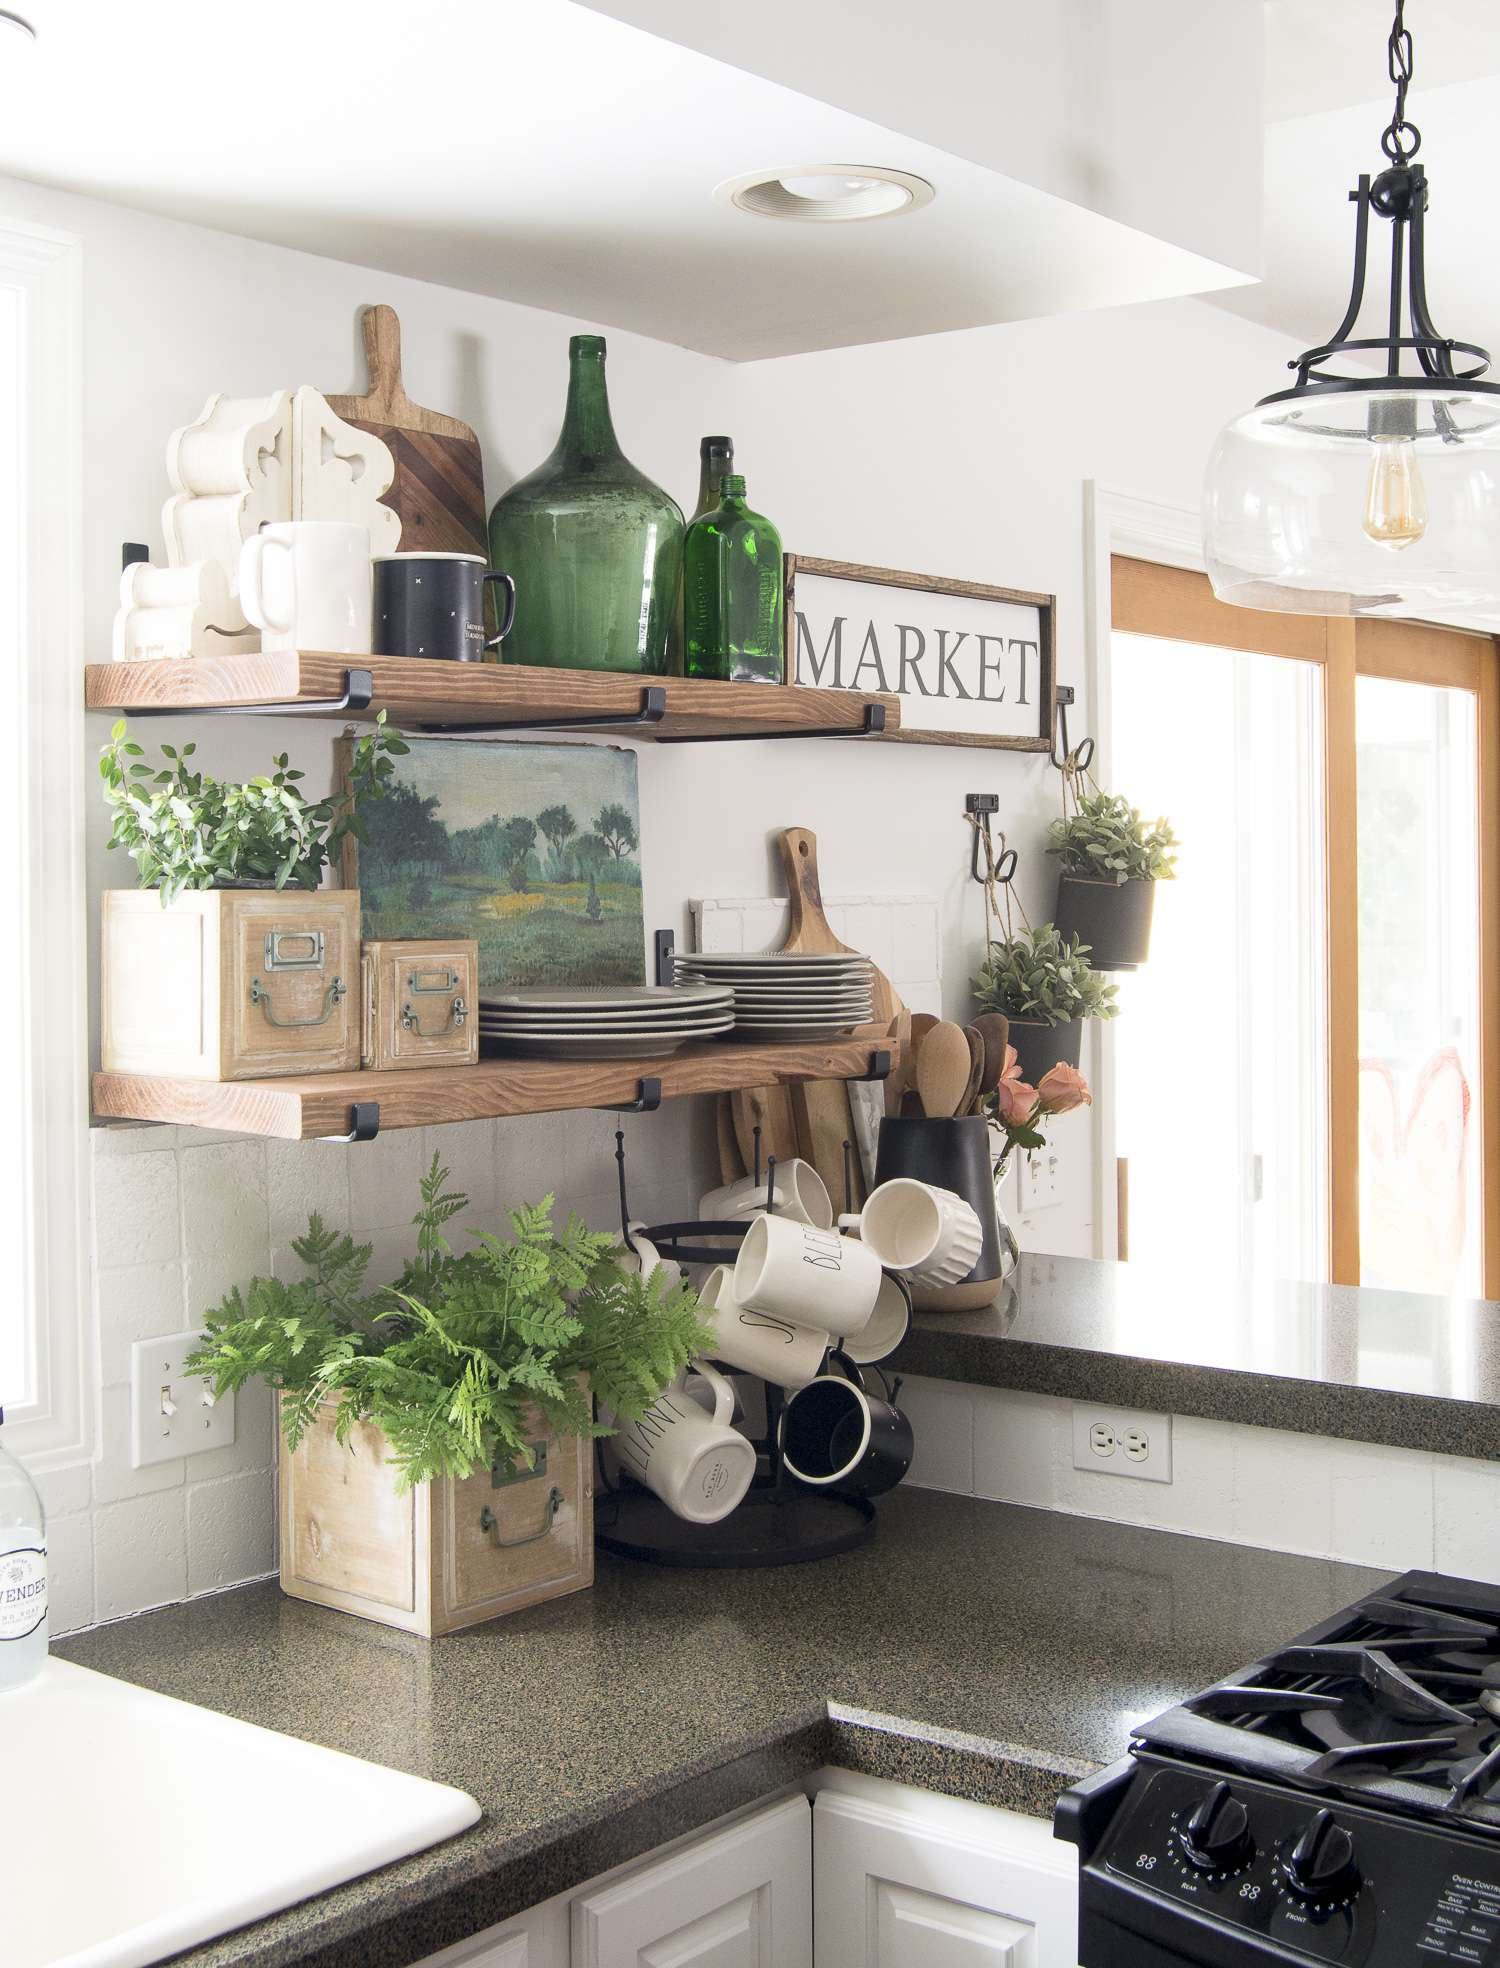 The Benefits Of Open Shelving In The Kitchen: How To Decorate Kitchen Shelves